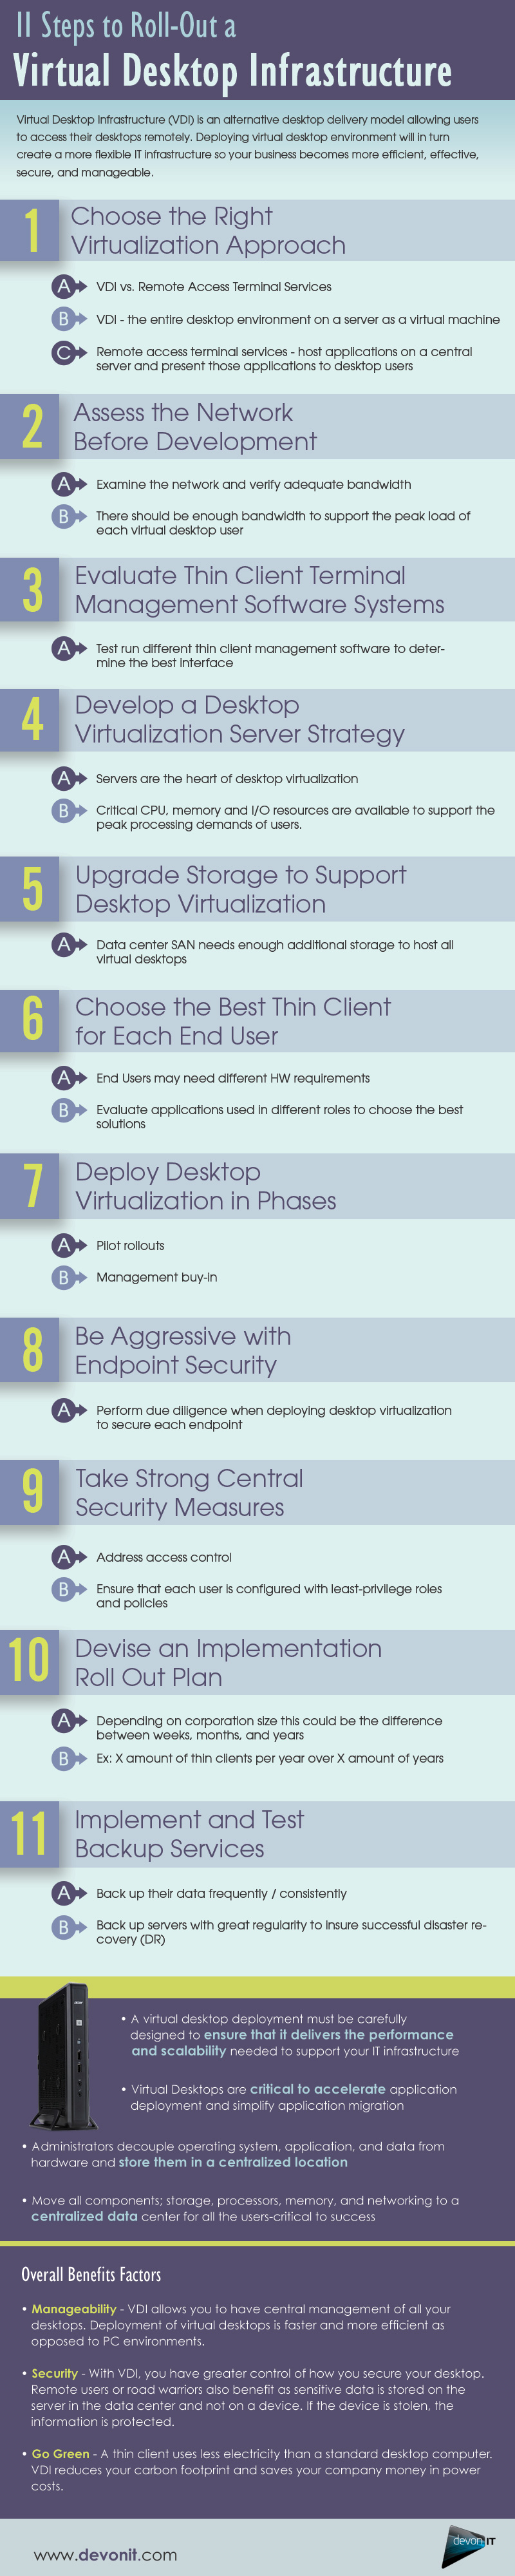 Virtual Desktop Infrastructure 101-Infographic